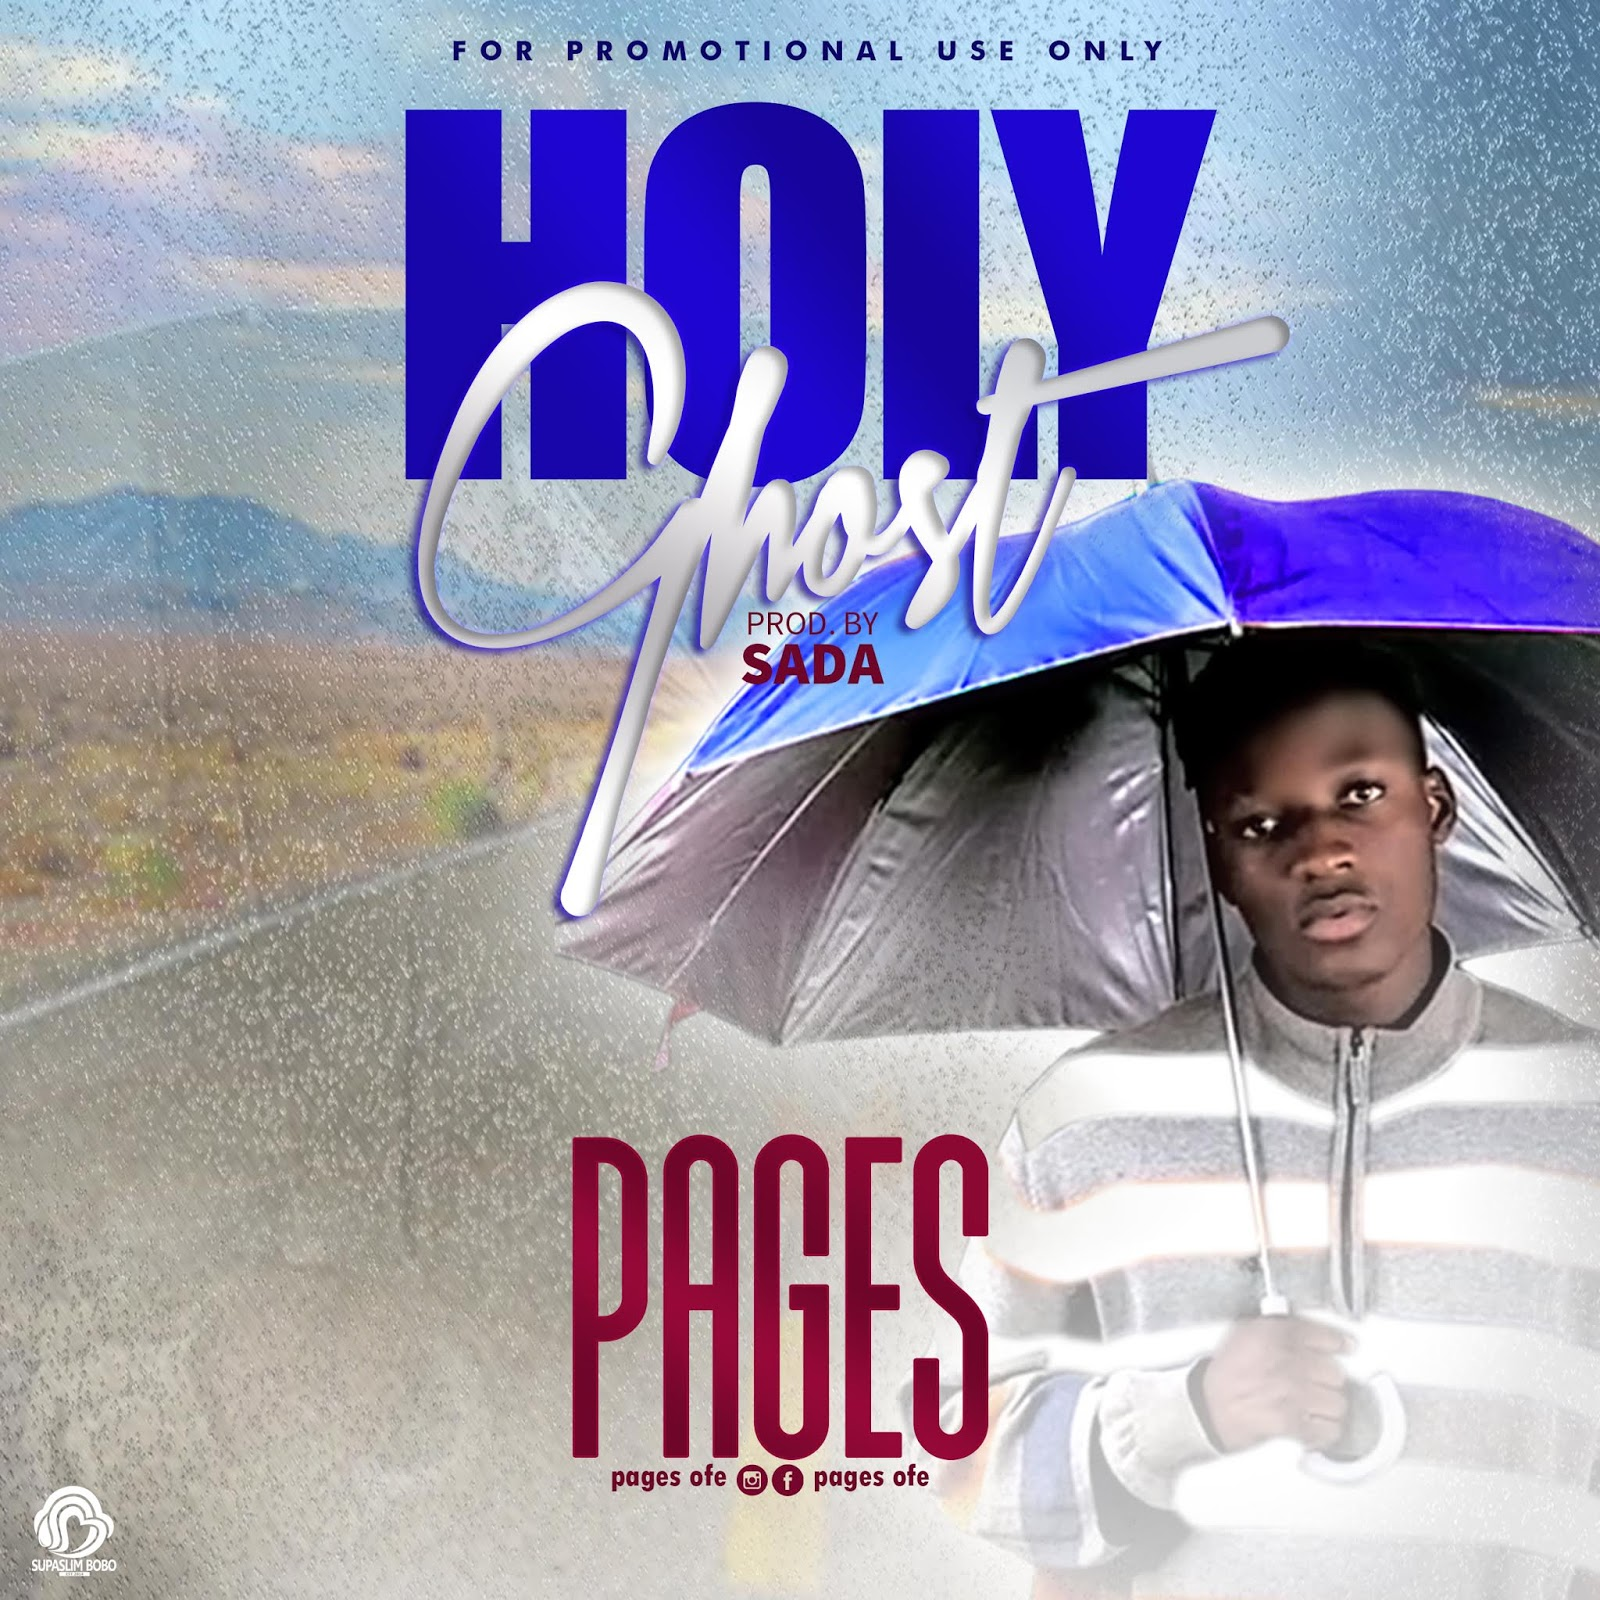 GOSPELHINTS - HOLYGHOST - PAGES